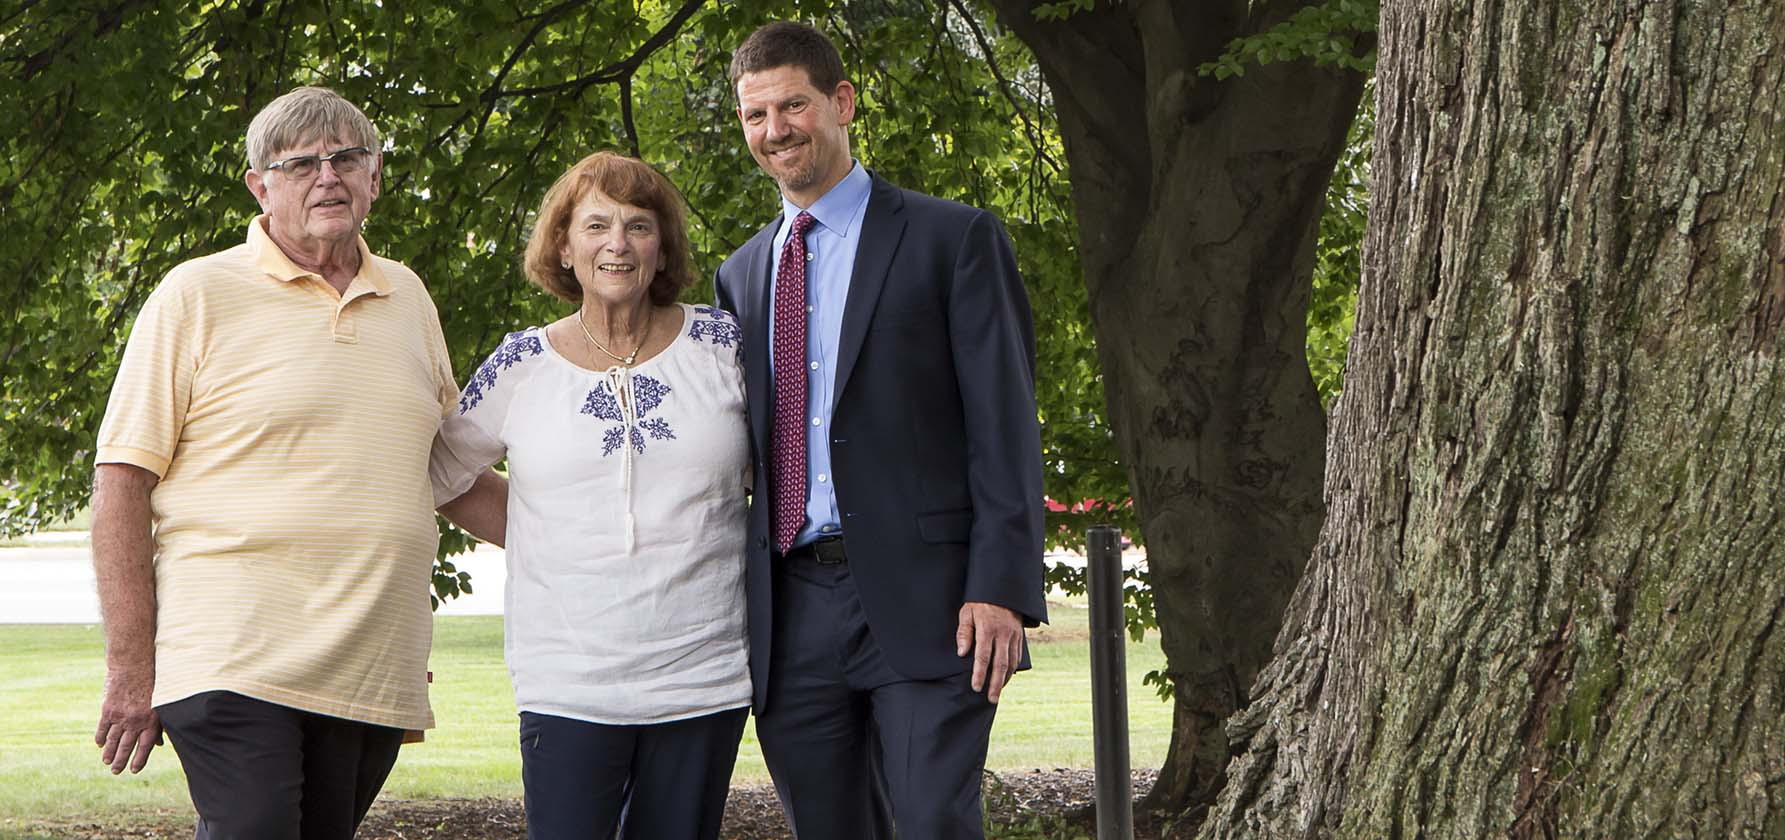 Jon Soden '91 (right) stands among the trees on Moravian's campus with his mother (center) and father (left).